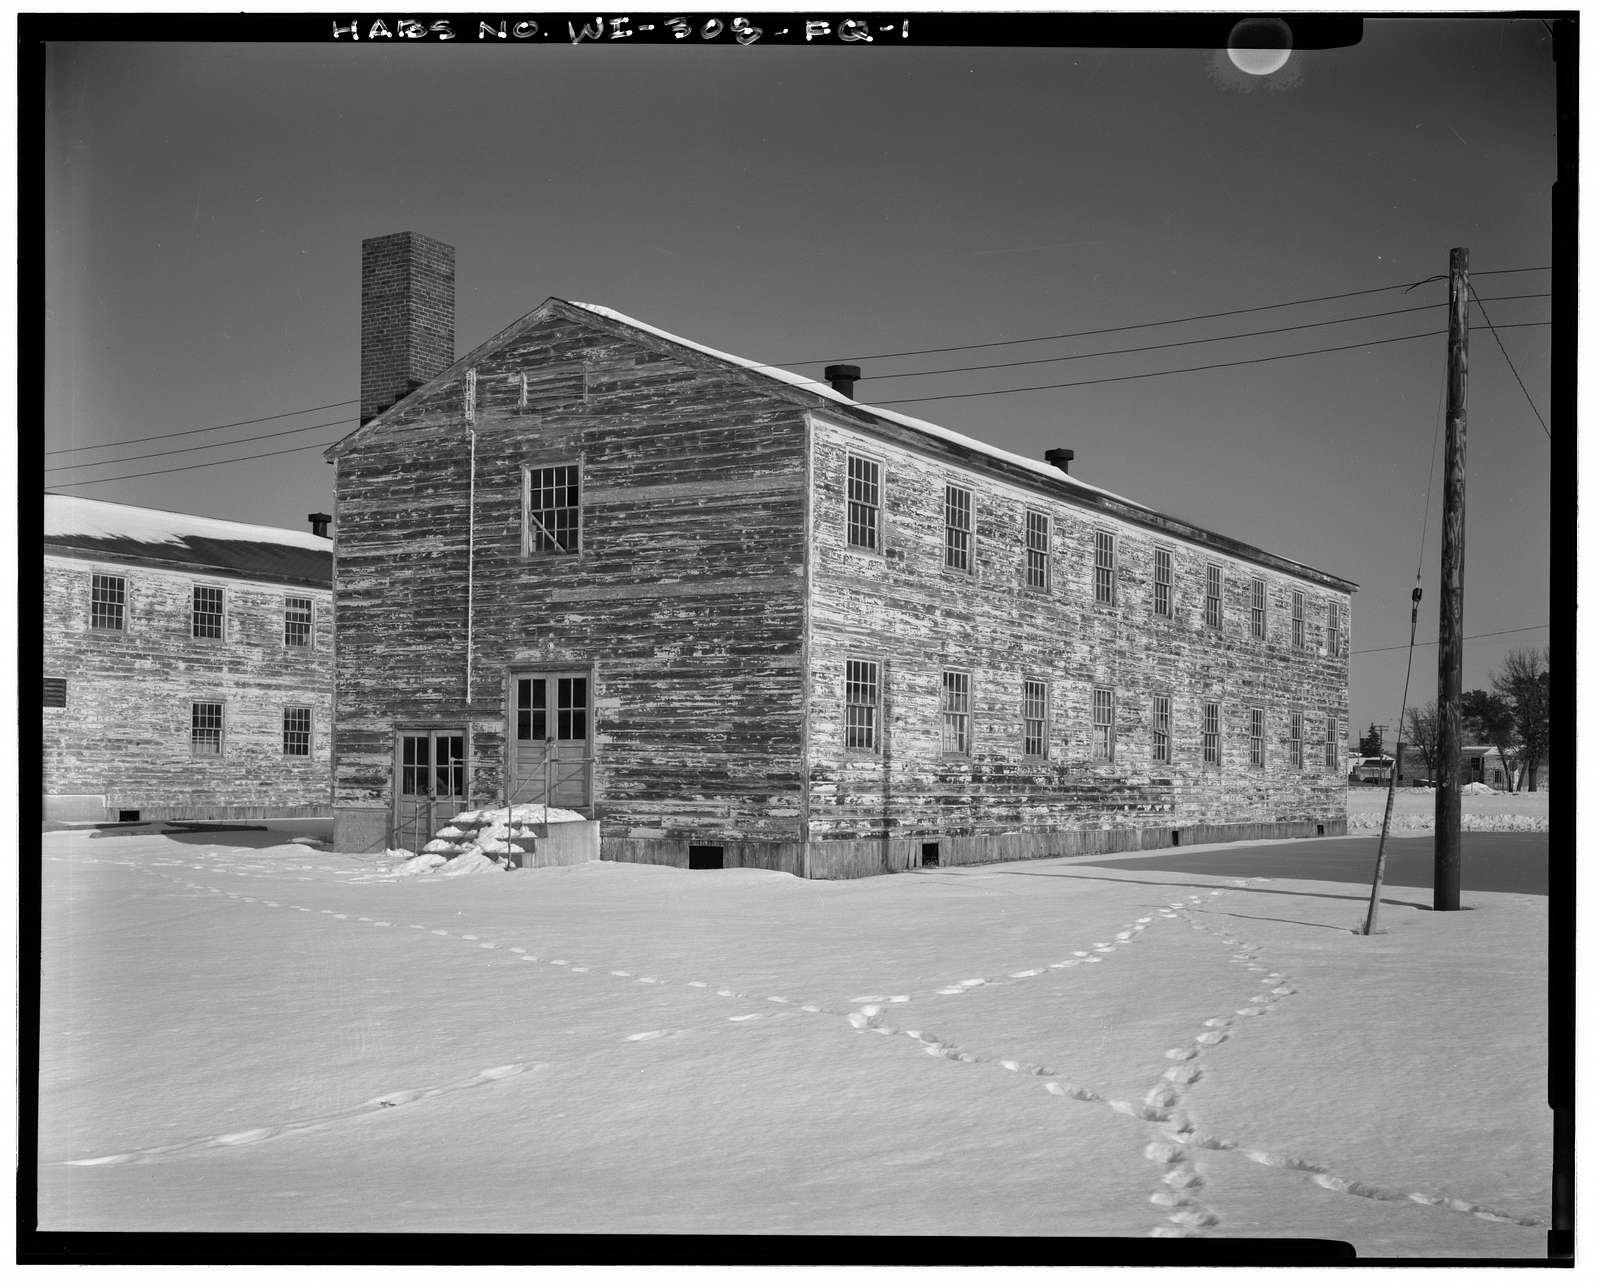 Fort McCoy, Building No. T-2307, Approximately 300' West of Building T-2139, Sparta, Monroe County, WI